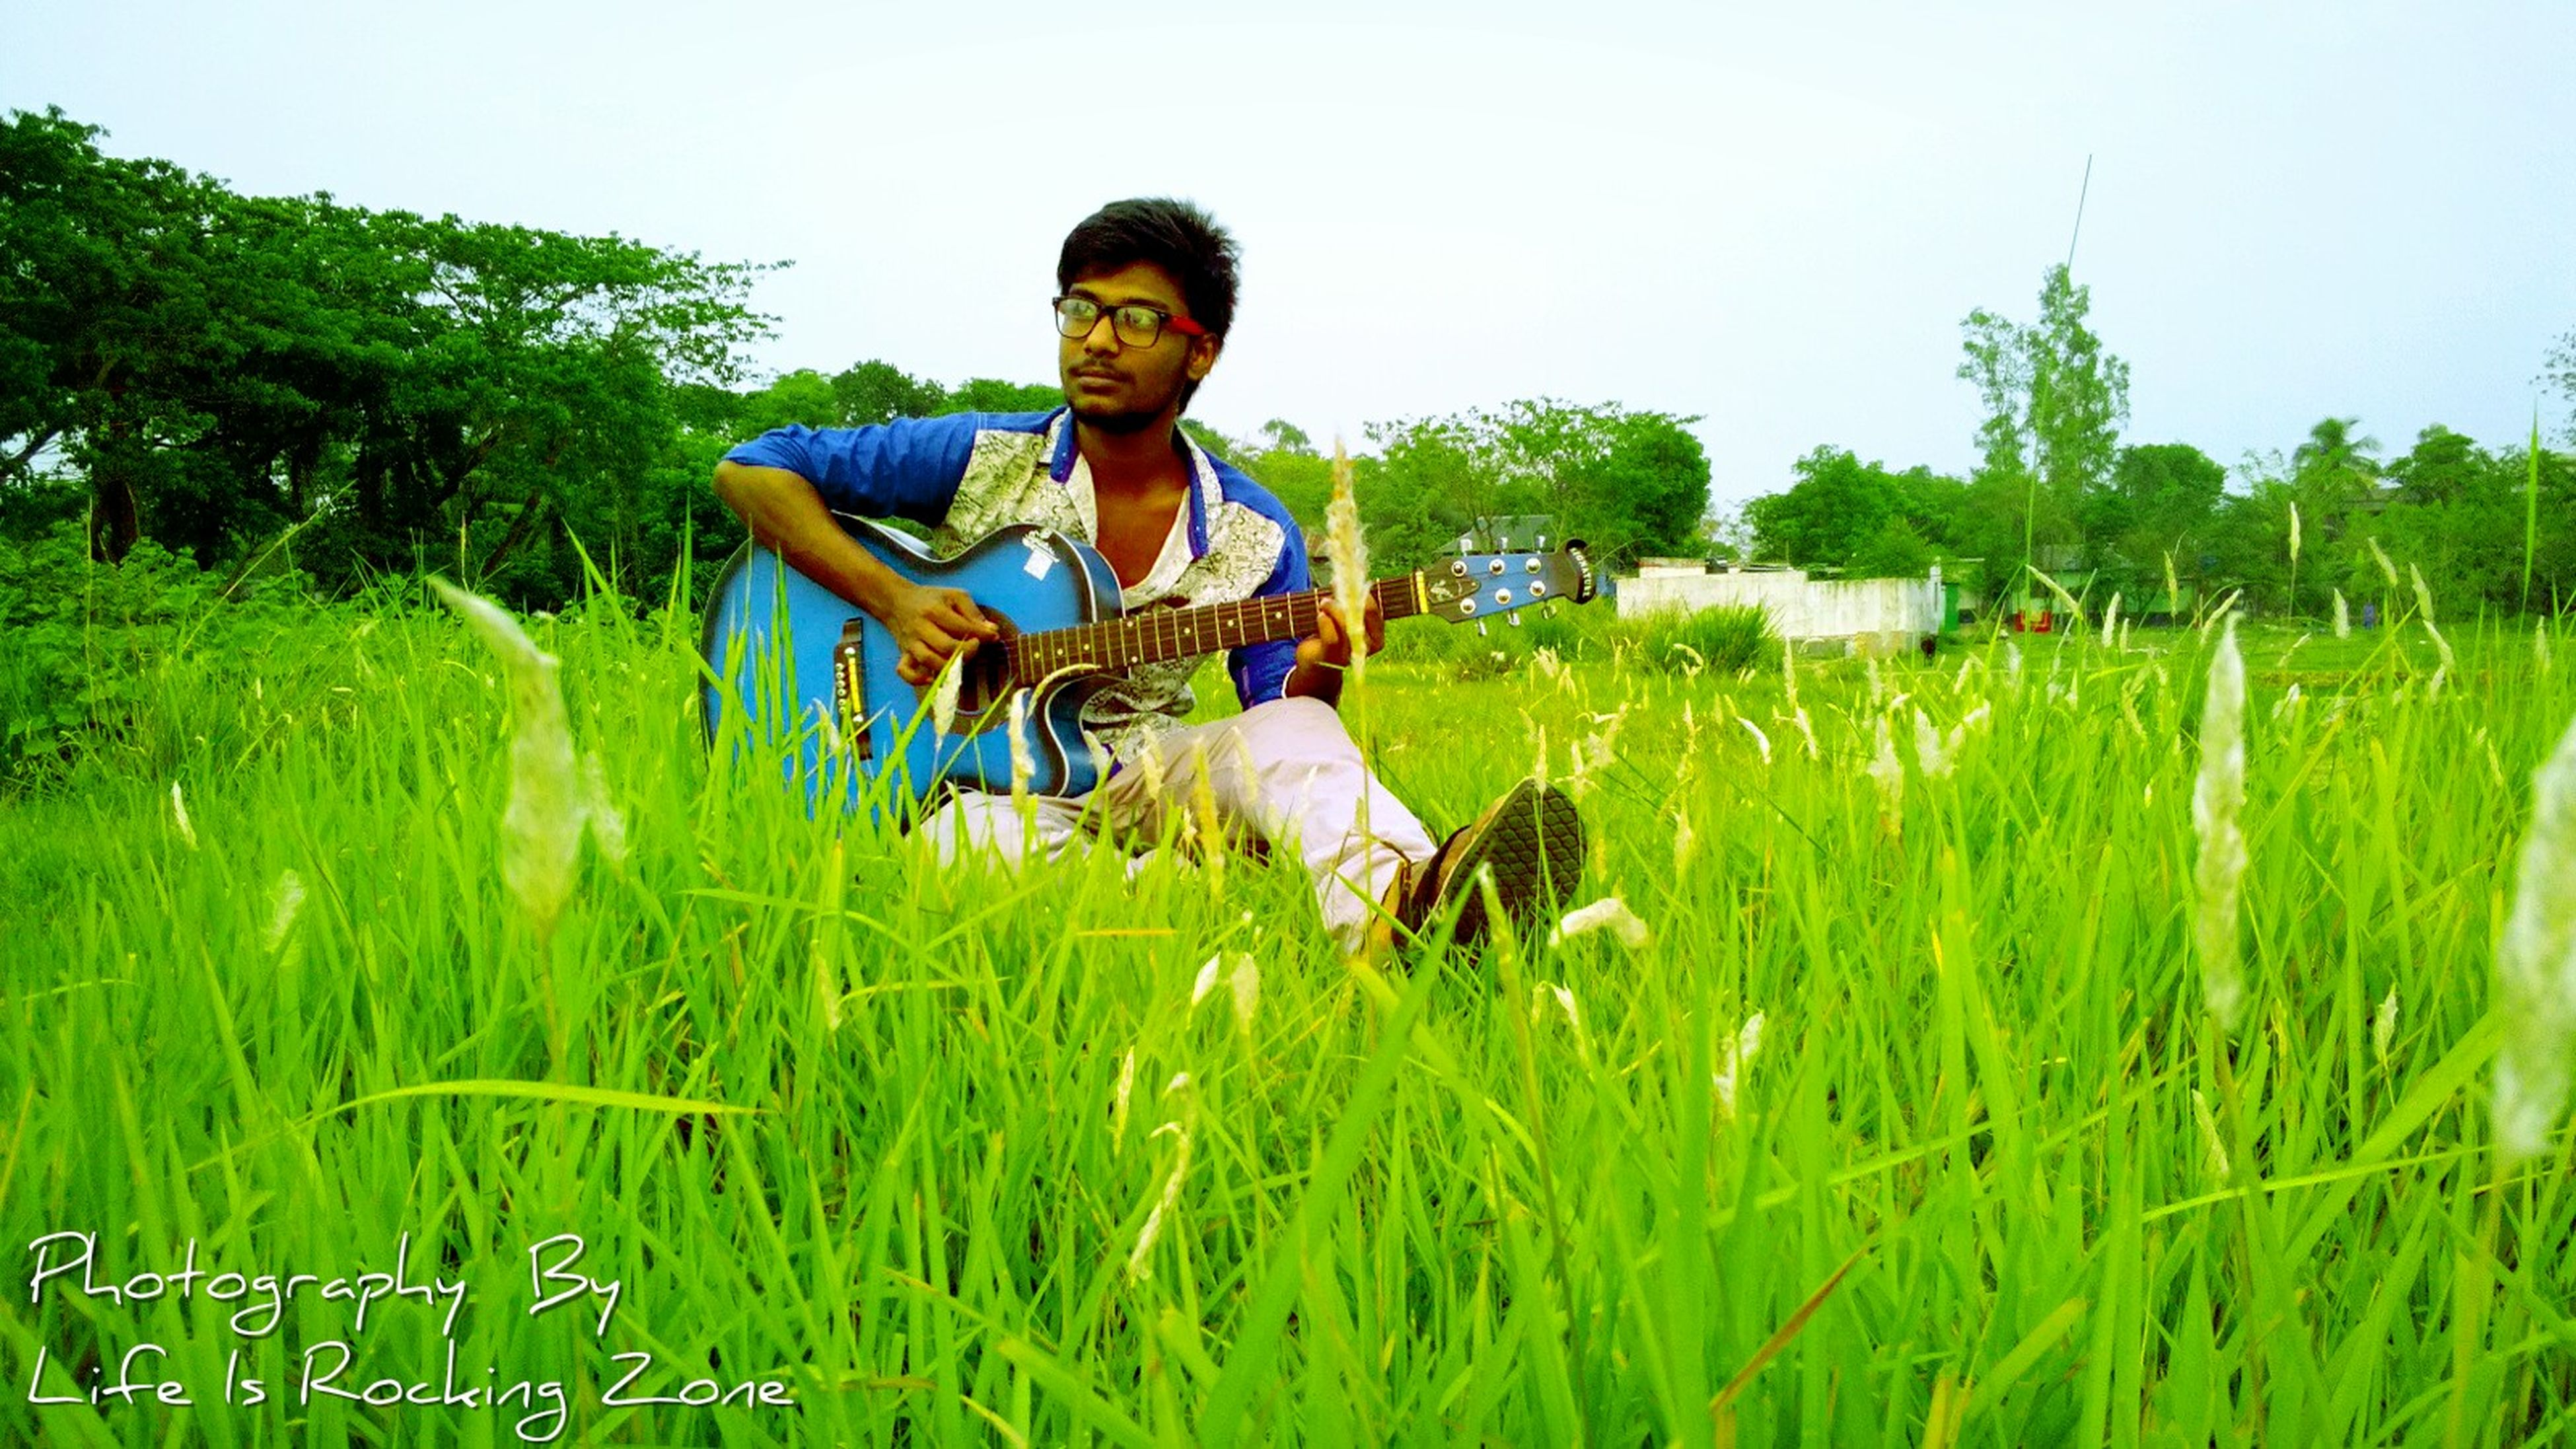 grass, leisure activity, full length, lifestyles, young adult, casual clothing, person, field, grassy, tree, green color, growth, young men, sky, fun, plant, enjoyment